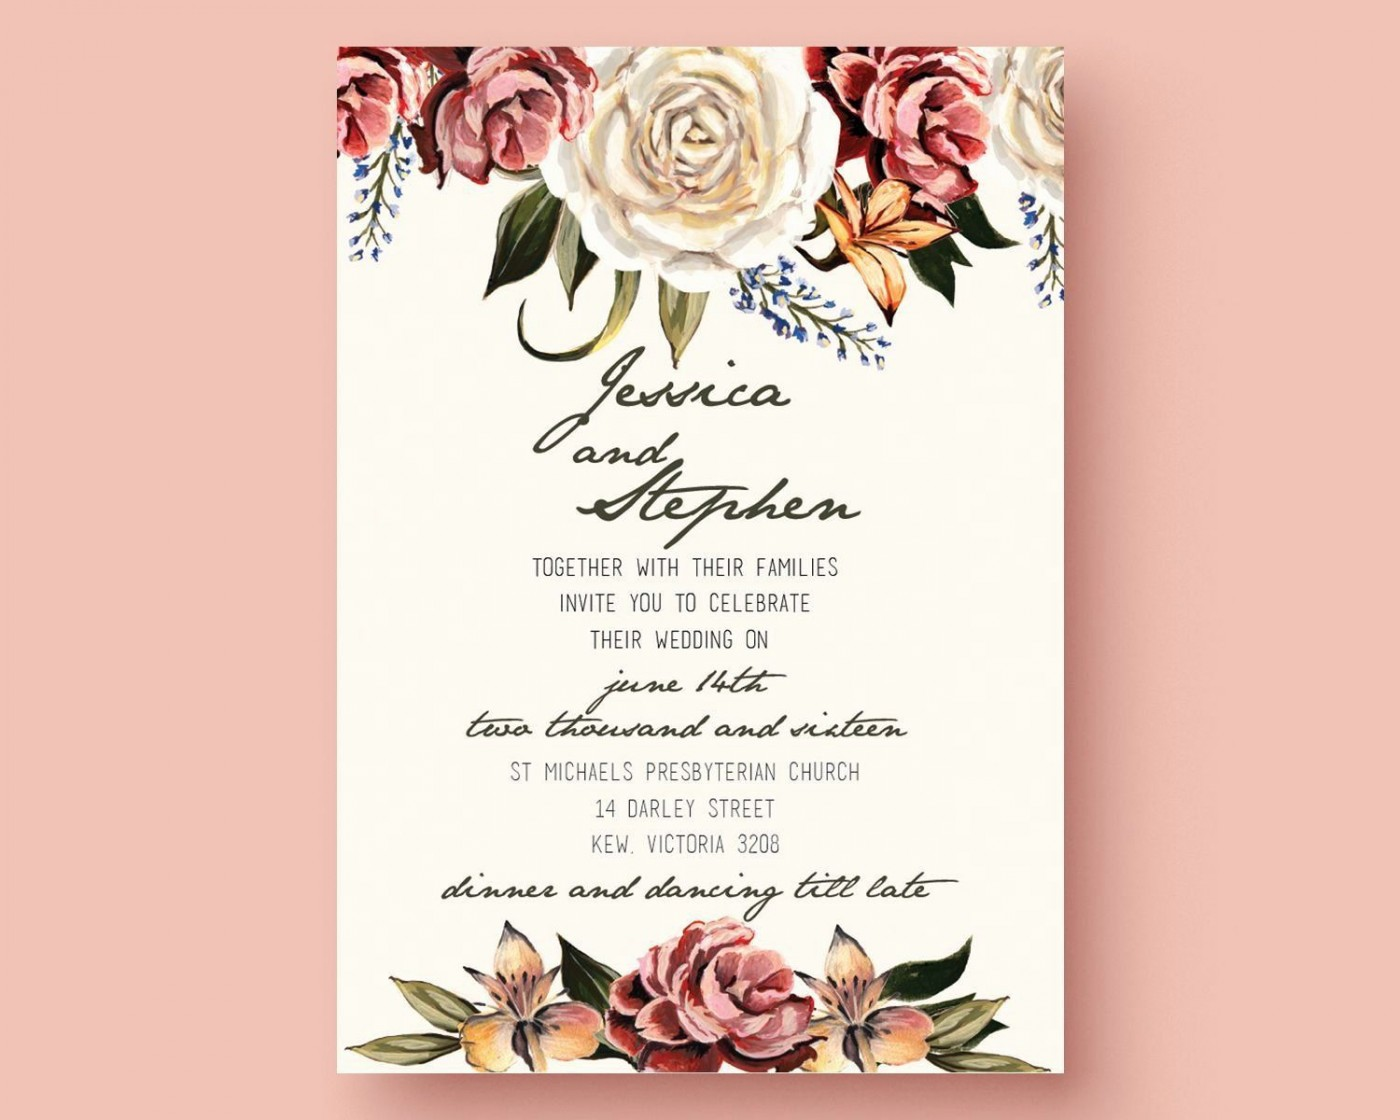 003 Impressive Free Download Wedding Invitation Template For Word Idea  Indian Microsoft1400